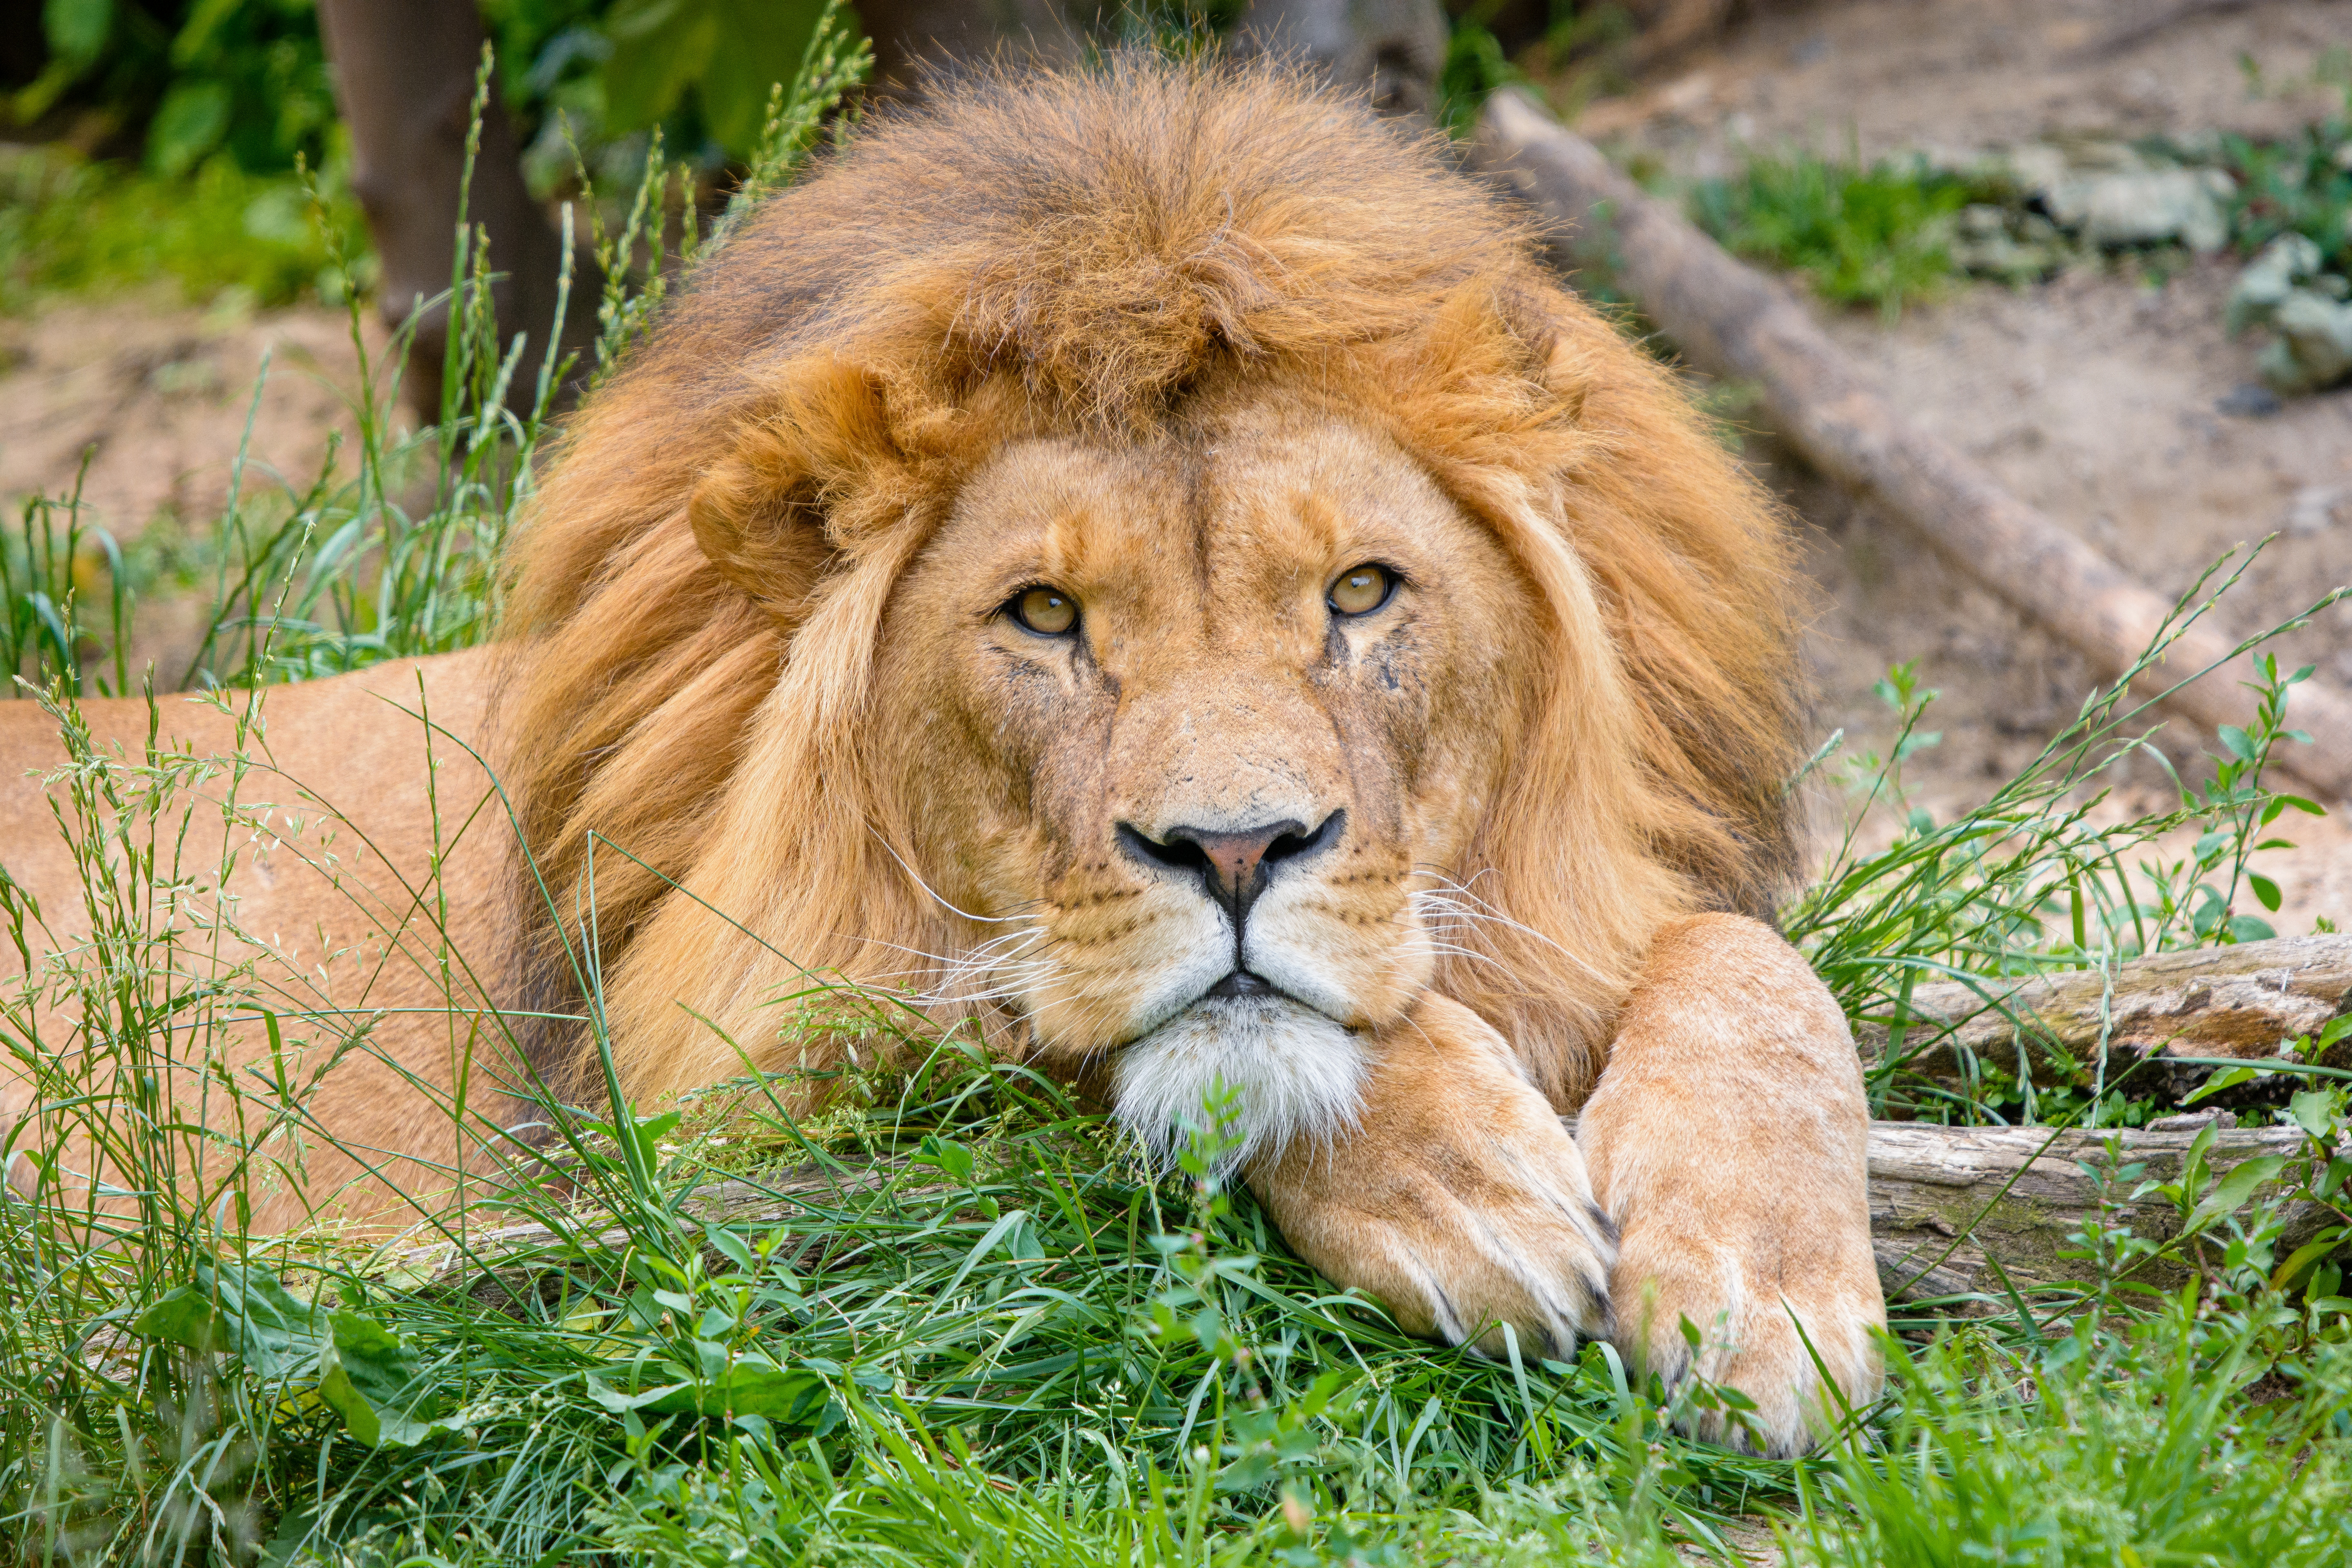 126720 download wallpaper Animals, Lion, Big Cat, Nice, Sweetheart, Mane screensavers and pictures for free